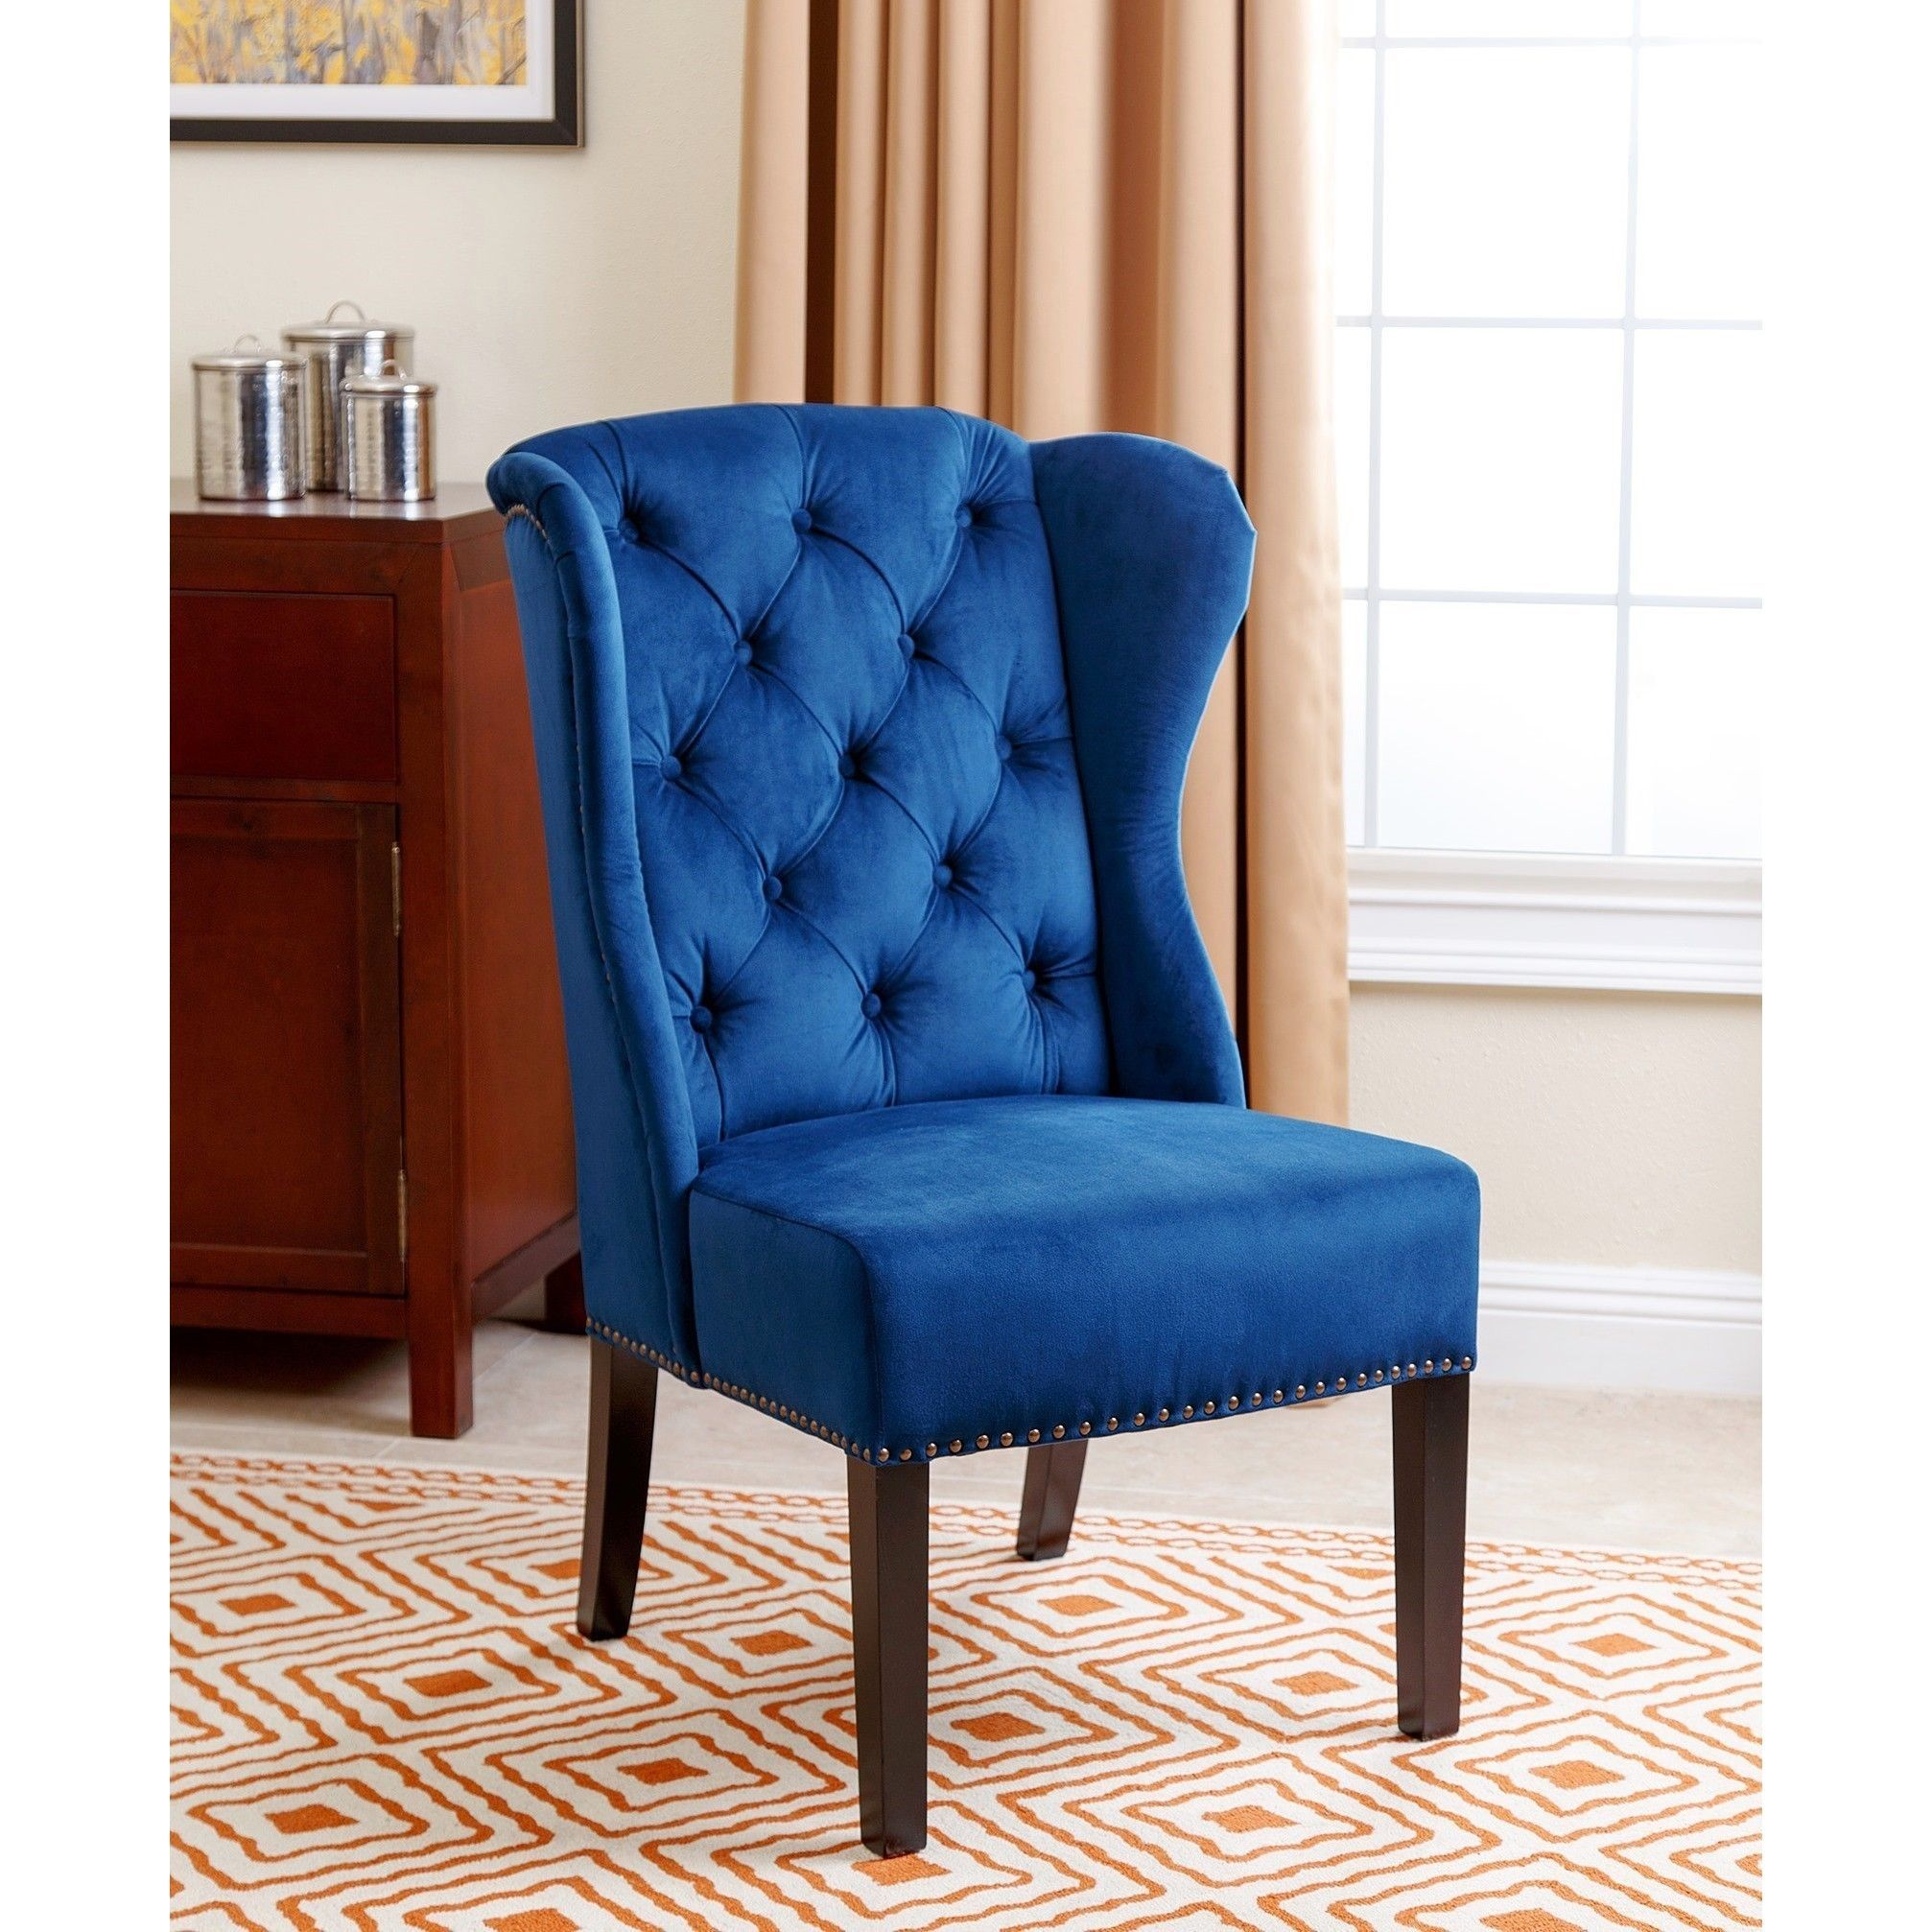 Navy Dining Room Chairs Staples Chair Sale Abbyson Sierra Tufted Blue Velvet Wingback